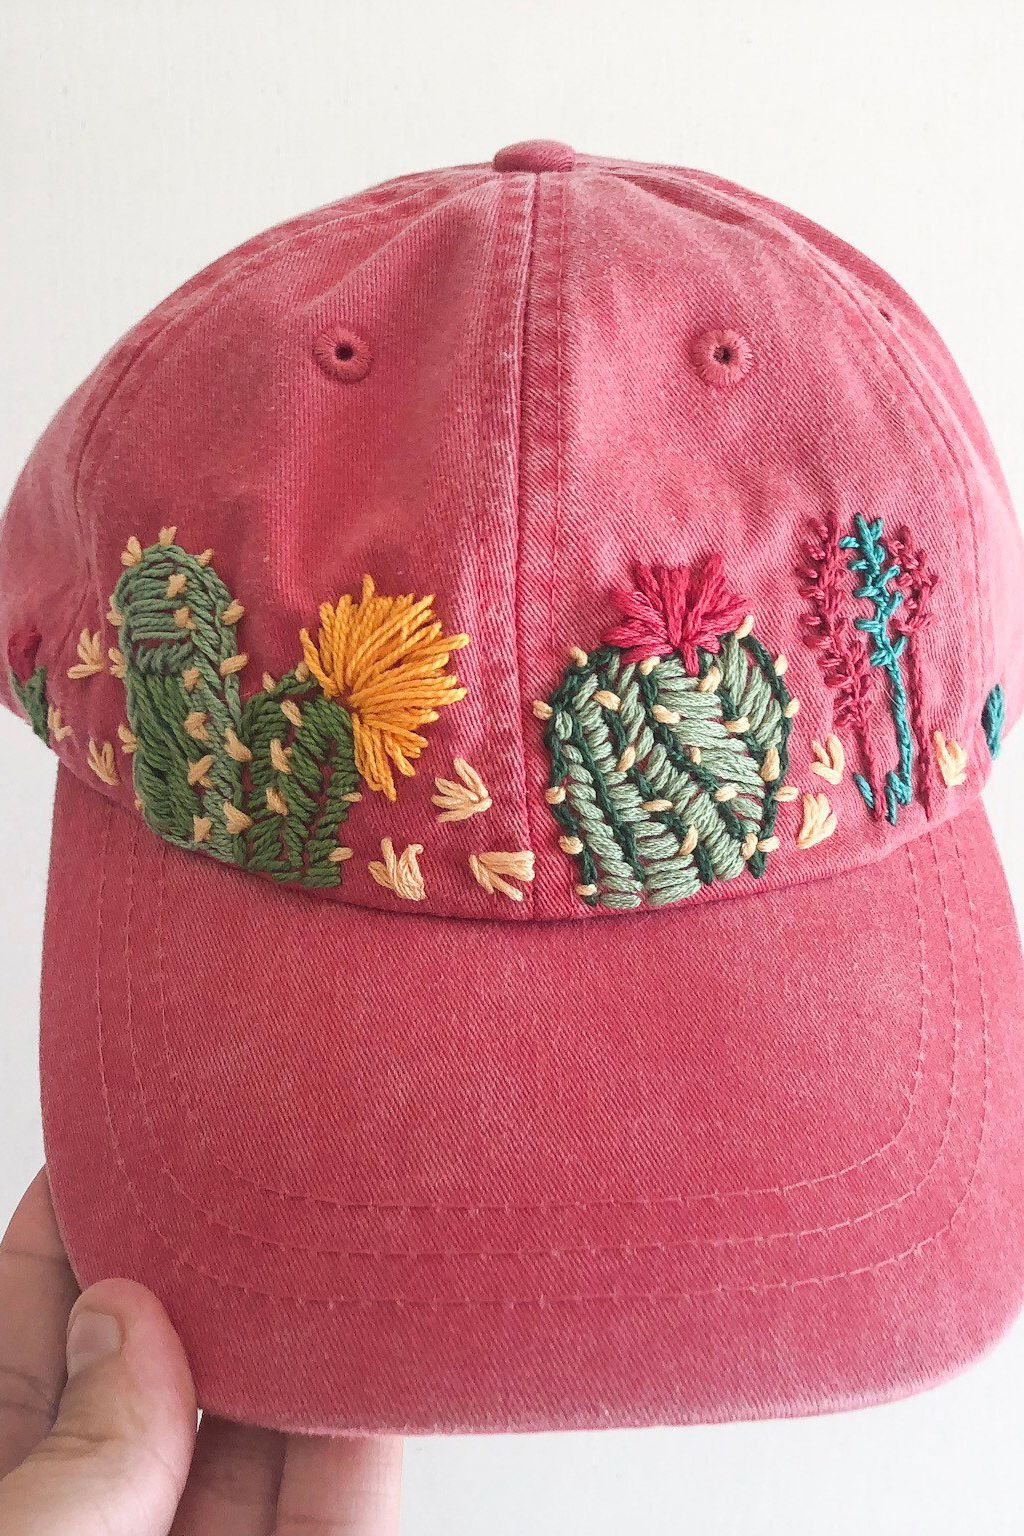 Hand Embroidered Hat embroidered cactus hat floral embroidered